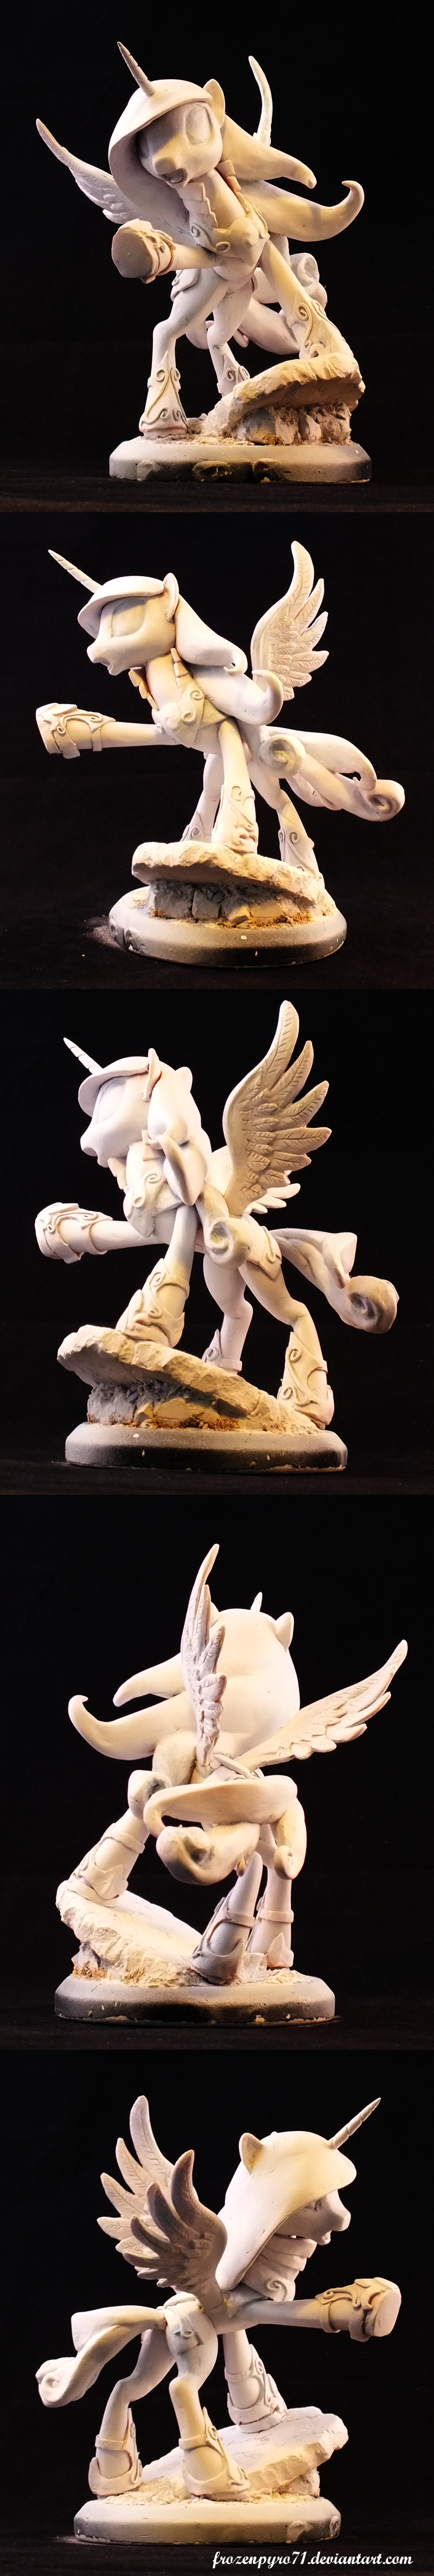 Princess Cadence - Final sculpt spin by frozenpyro71